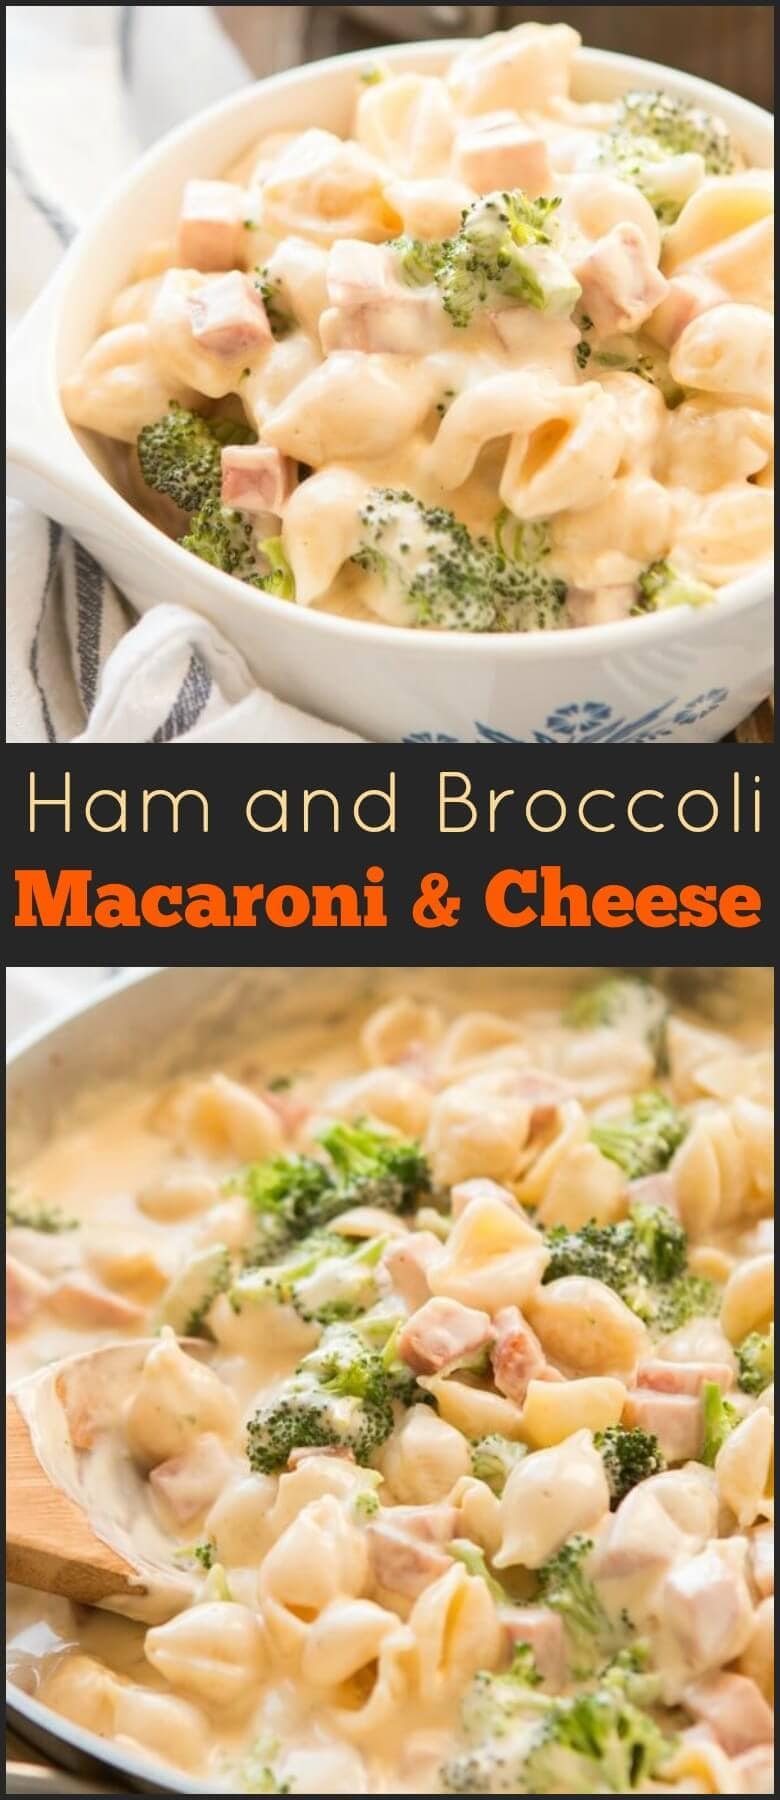 Our ham and broccoli macaroni and cheese is one of our favorite meals to make. It's the side and main dish (the ham) brought together!